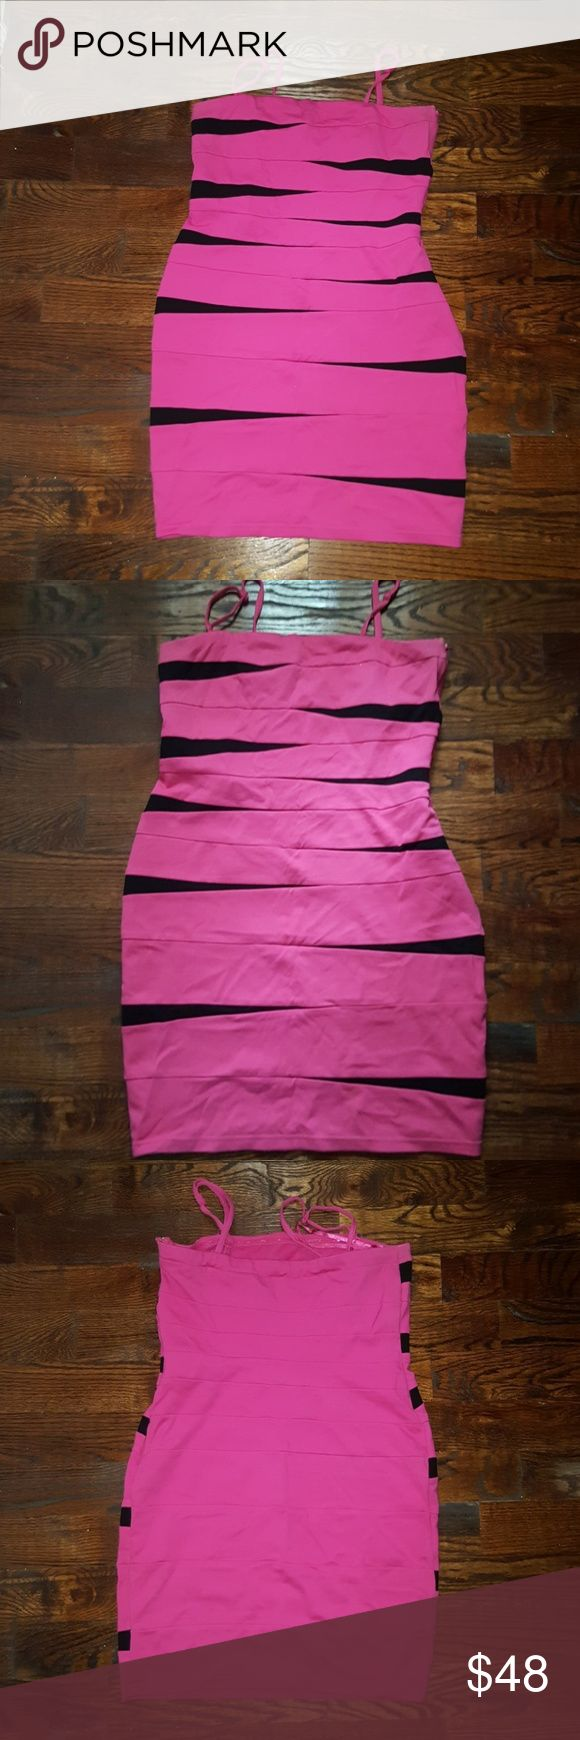 INC Dress Pink and black dress with straps that can be worn on the shoulders or strapless INC International Concepts Dresses Midi